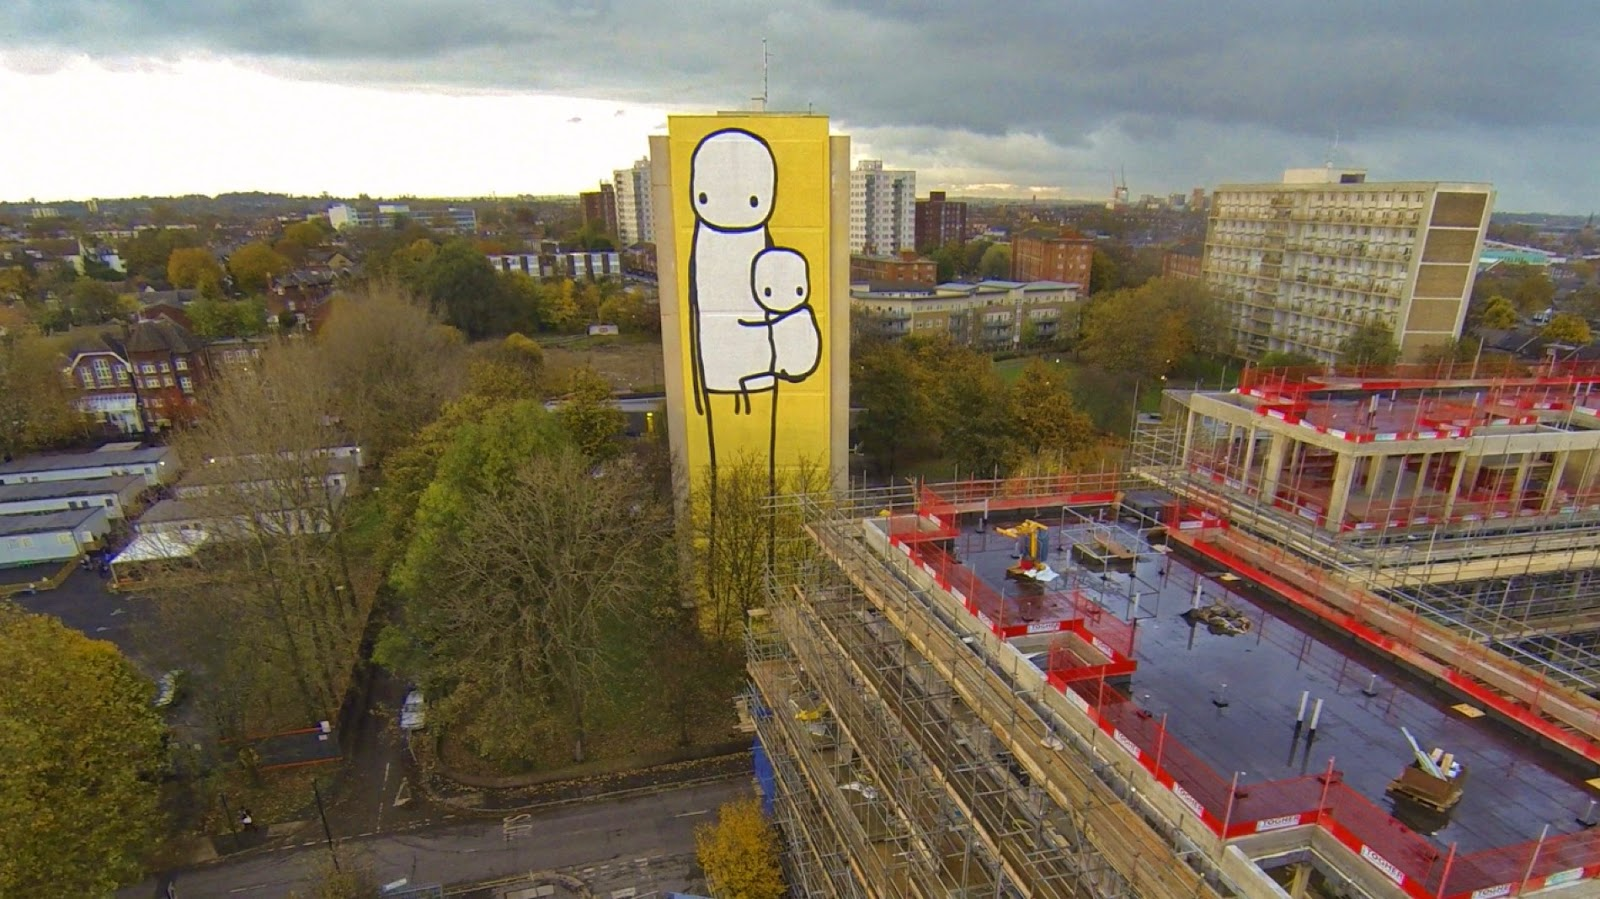 A newly completed 125 ft high mural painted by Stik on a condemned council owned tower block in Acton, West London is the tallest street artwork in the UK. The artwork depicts a mother and child looking forlornly from their condemned council block at the luxury apartment complexes being built around them.